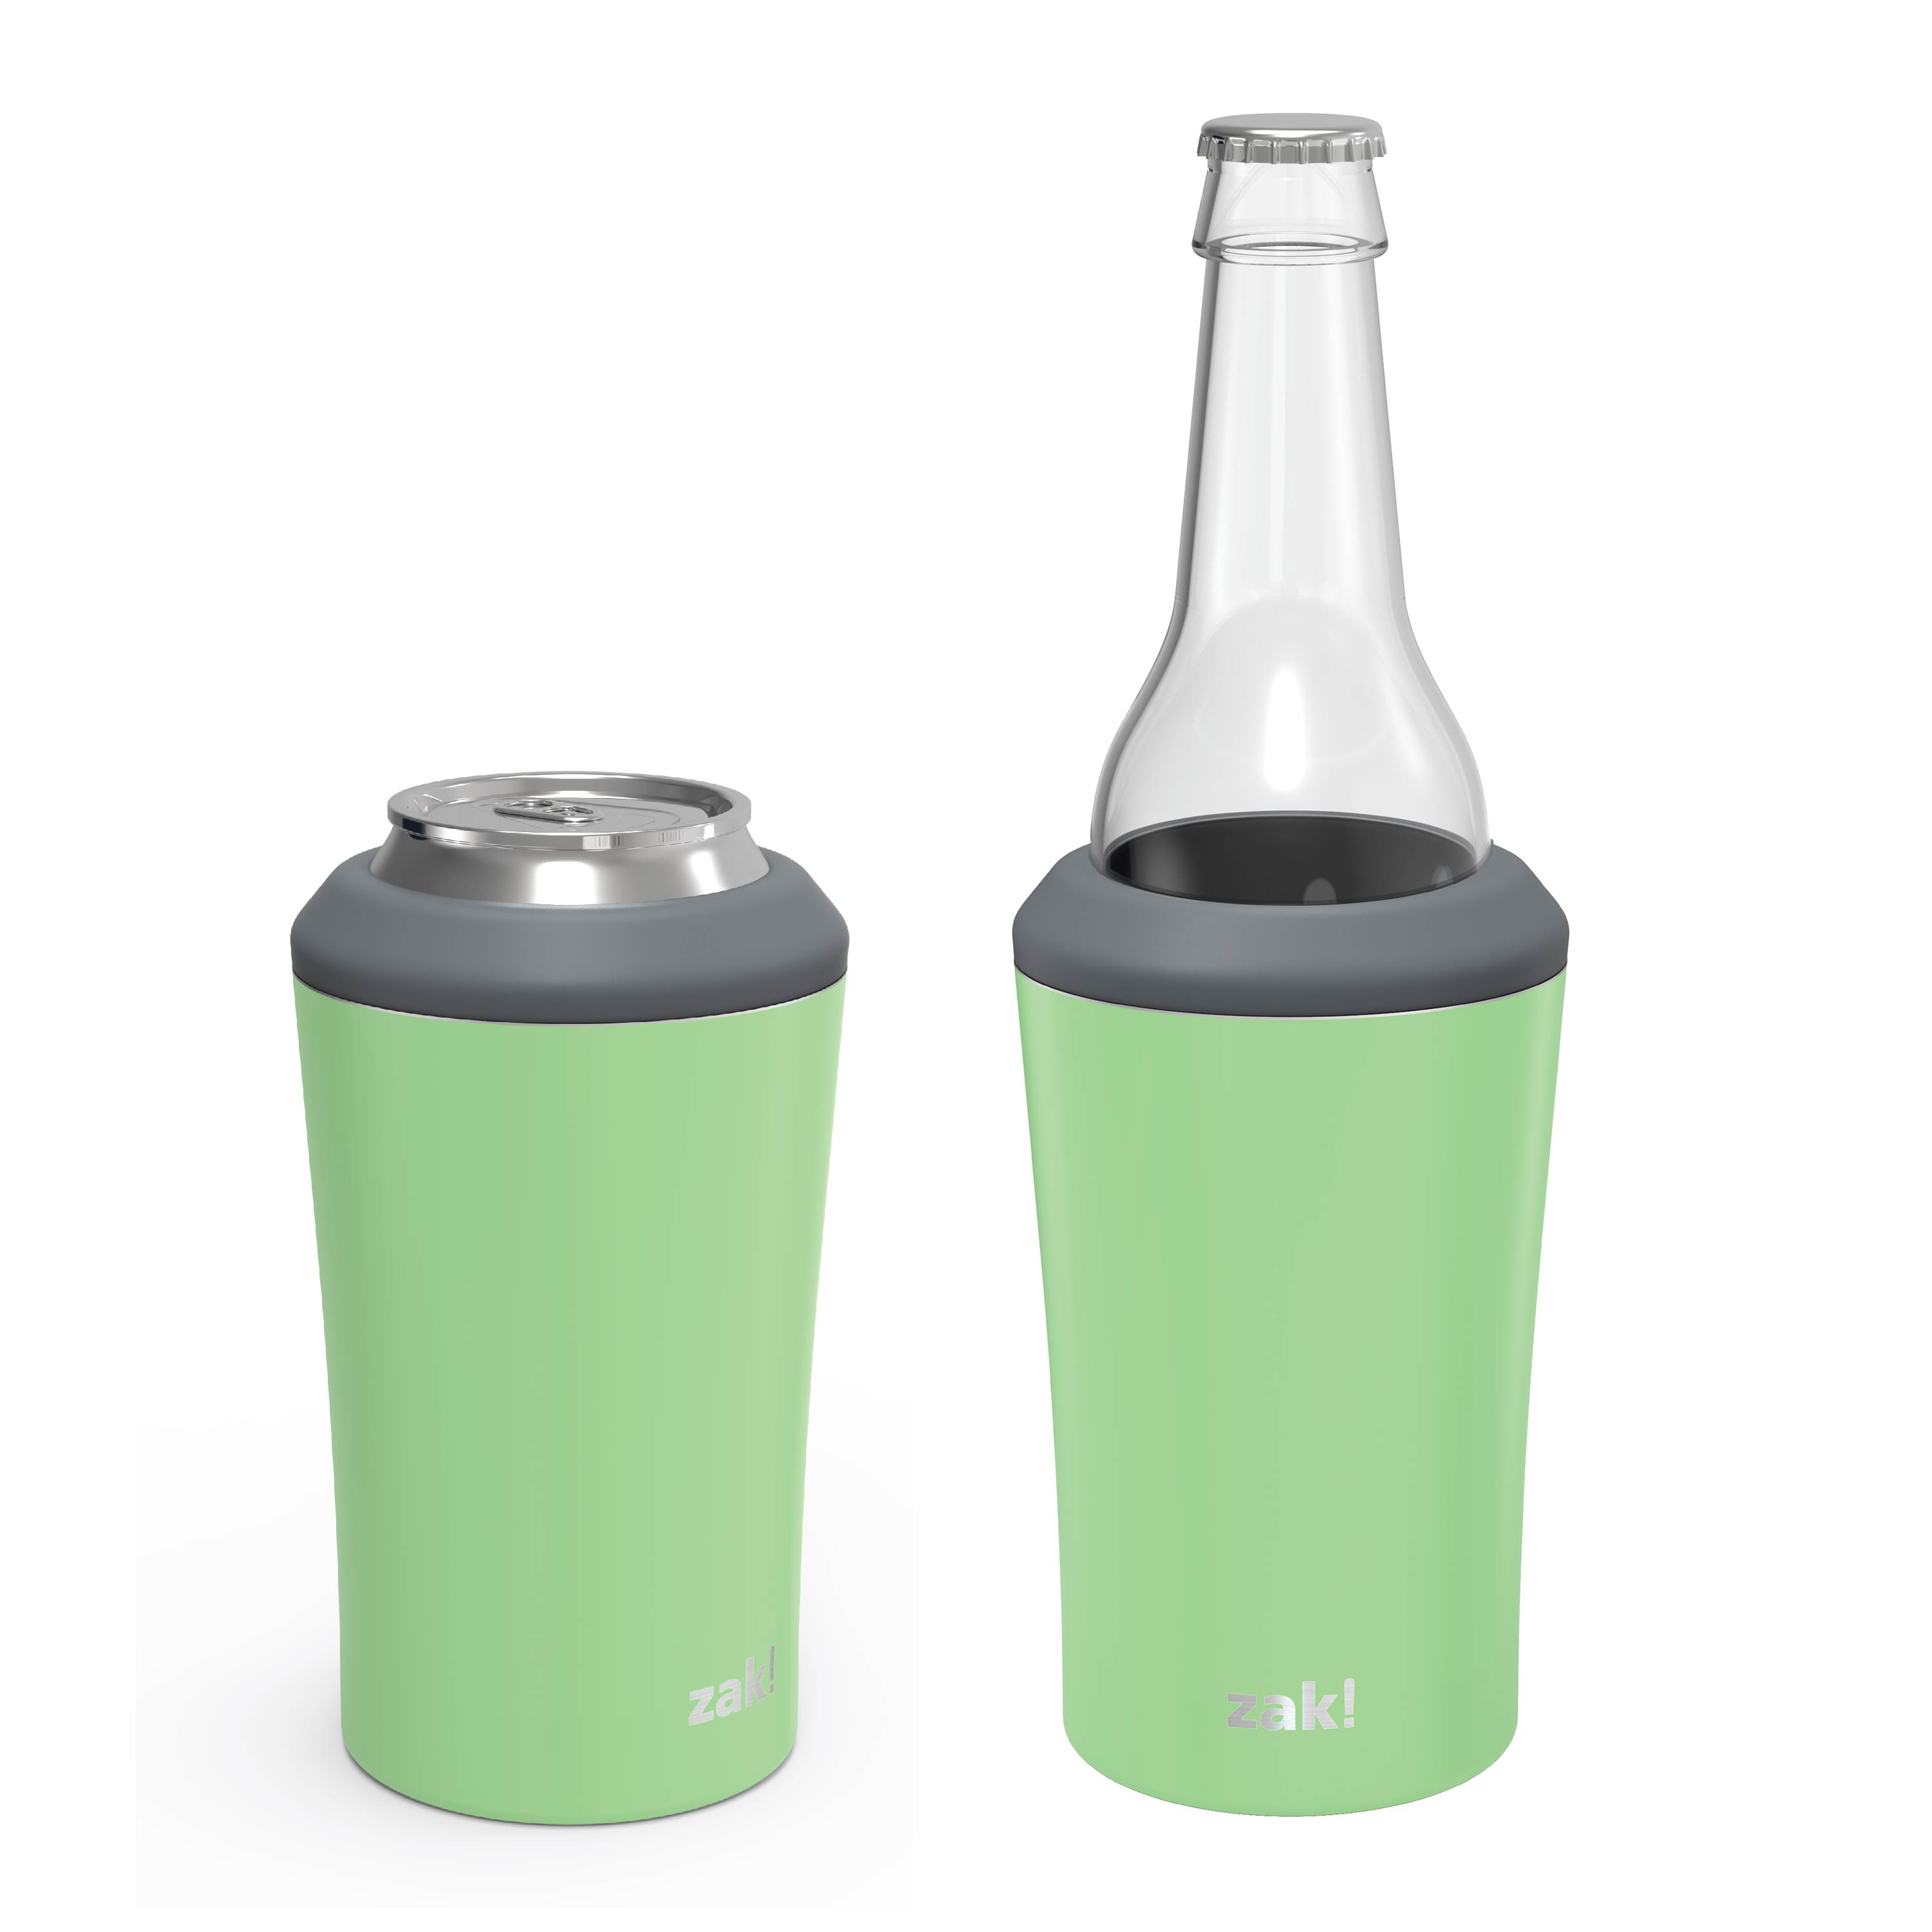 Zak Hydration 12 ounce Double Wall Stainless Steel Can and Bottle Cooler with Vacuum Insulation, Pistachio slideshow image 2